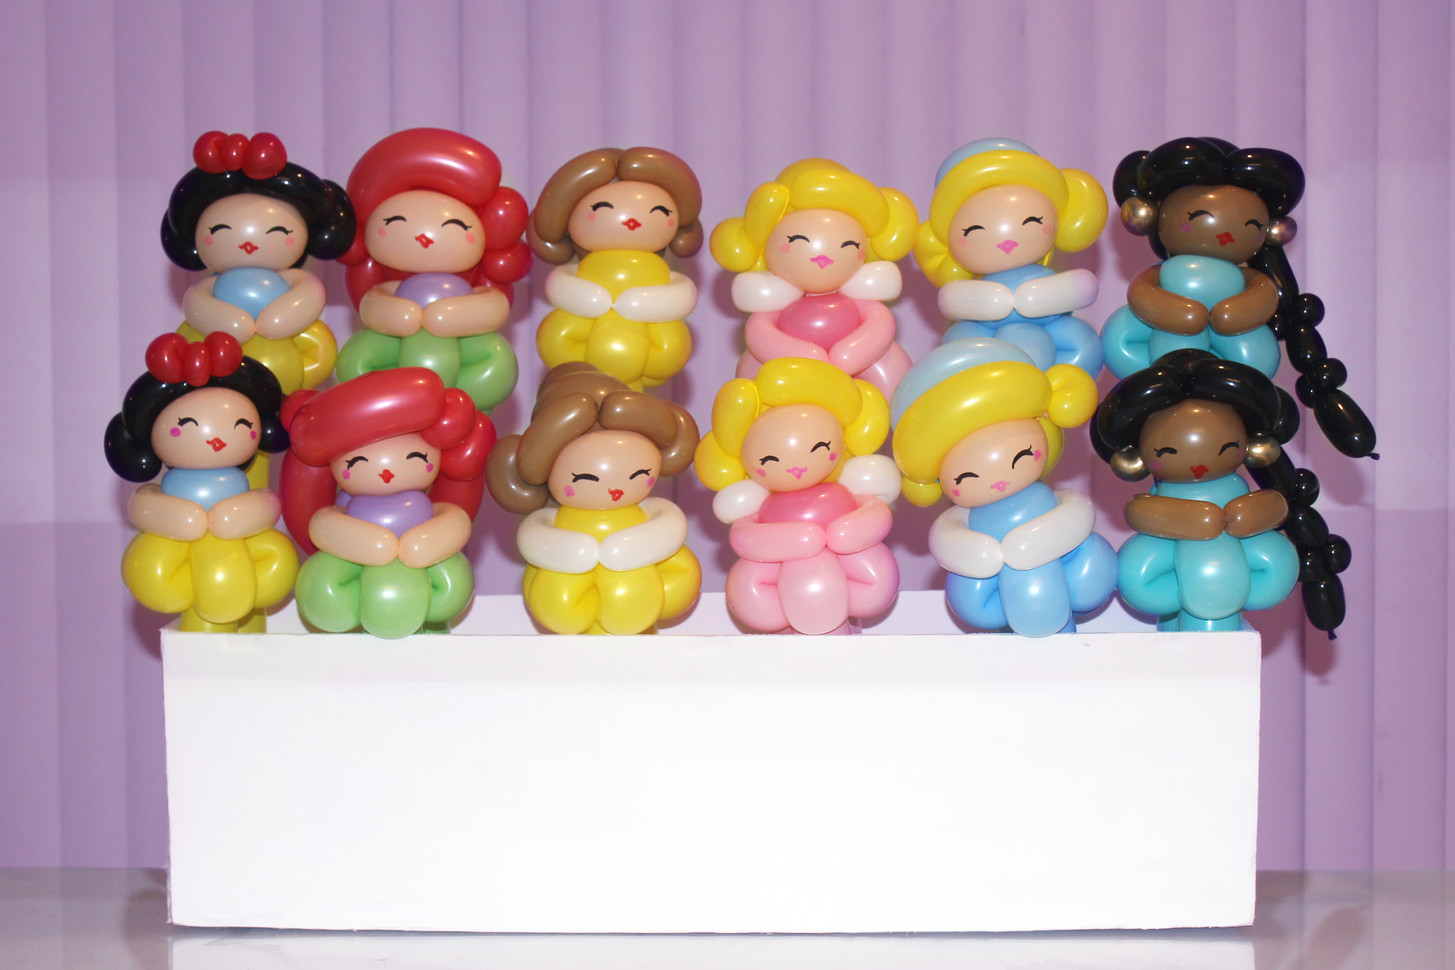 Disney Princesses Buddies